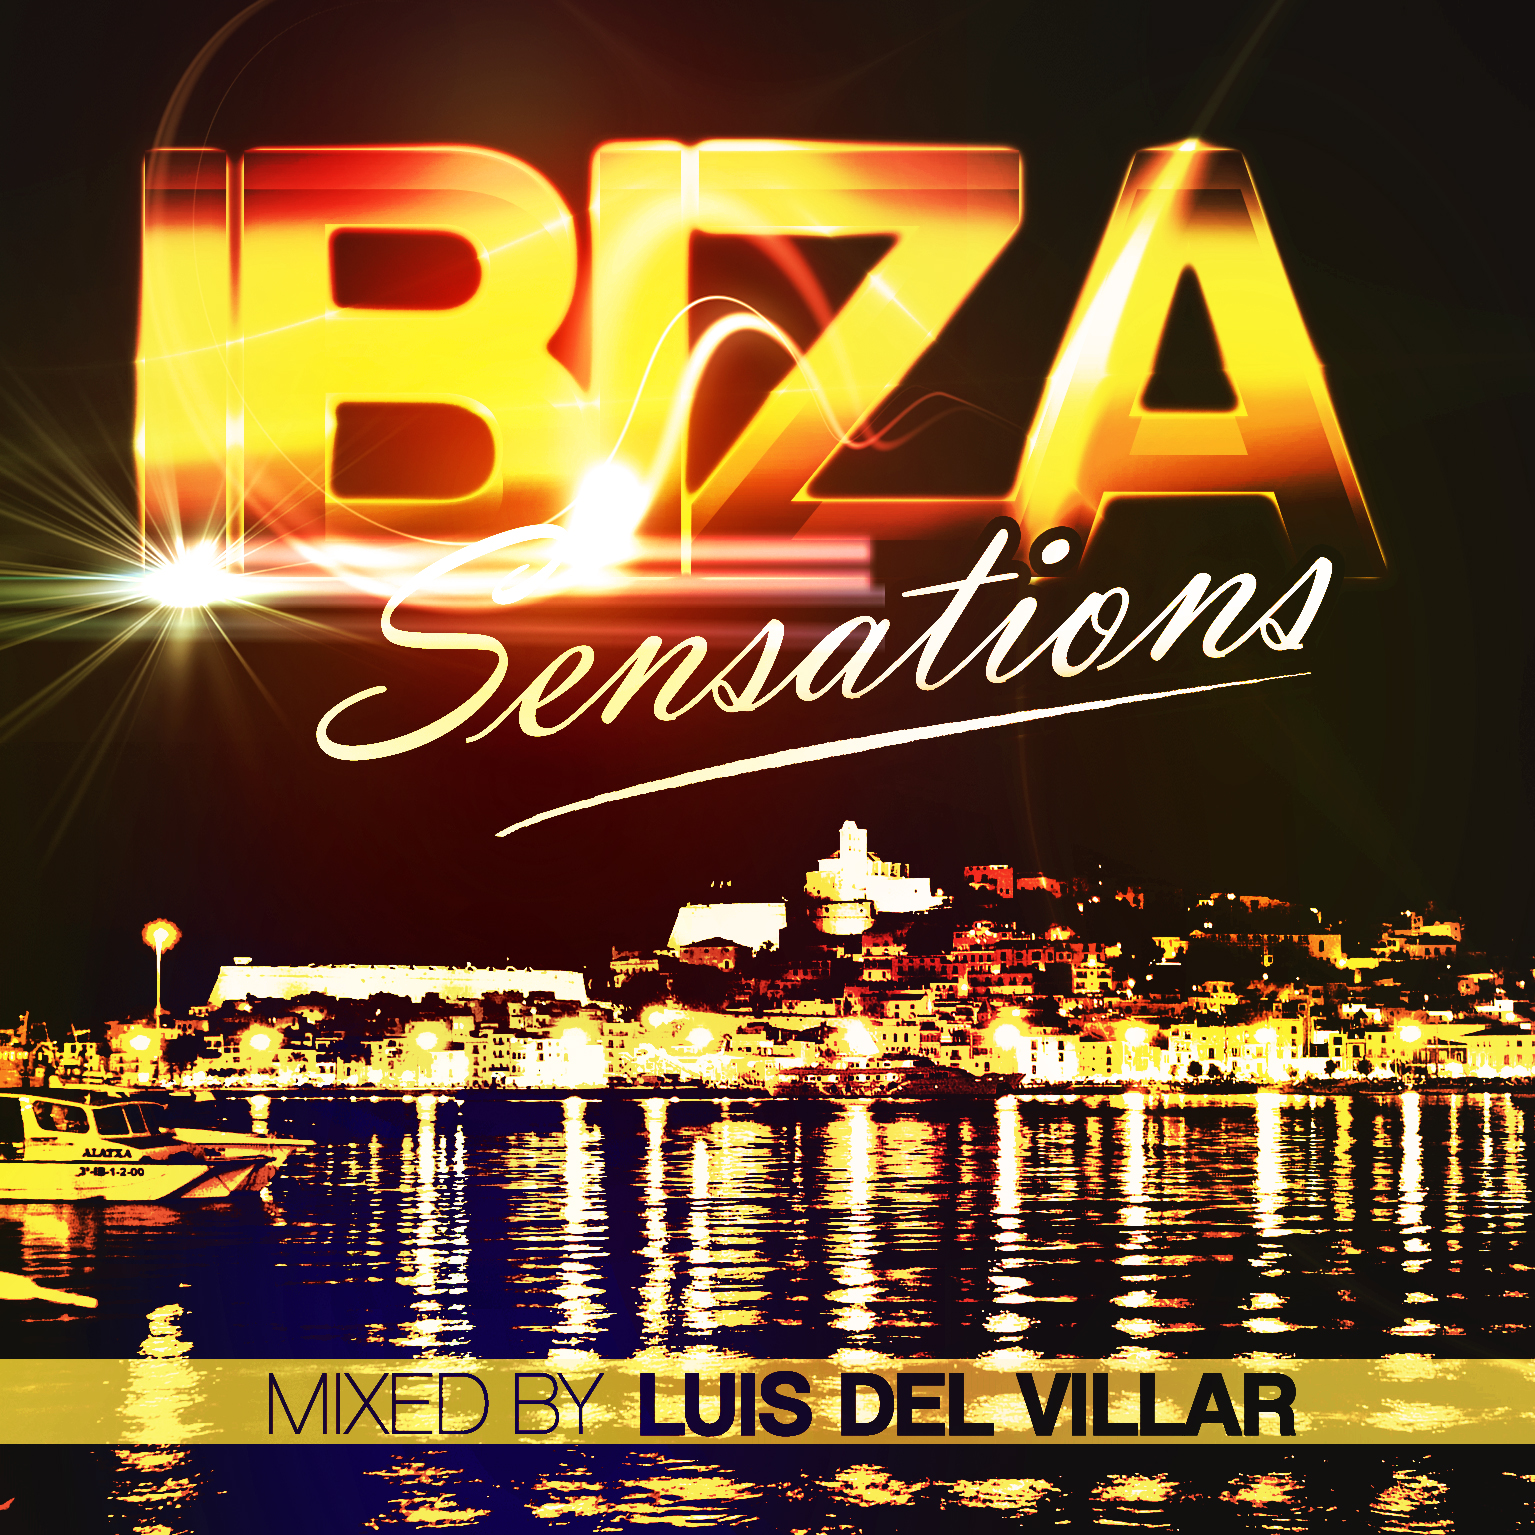 Artwork for Ibiza Sensations 46